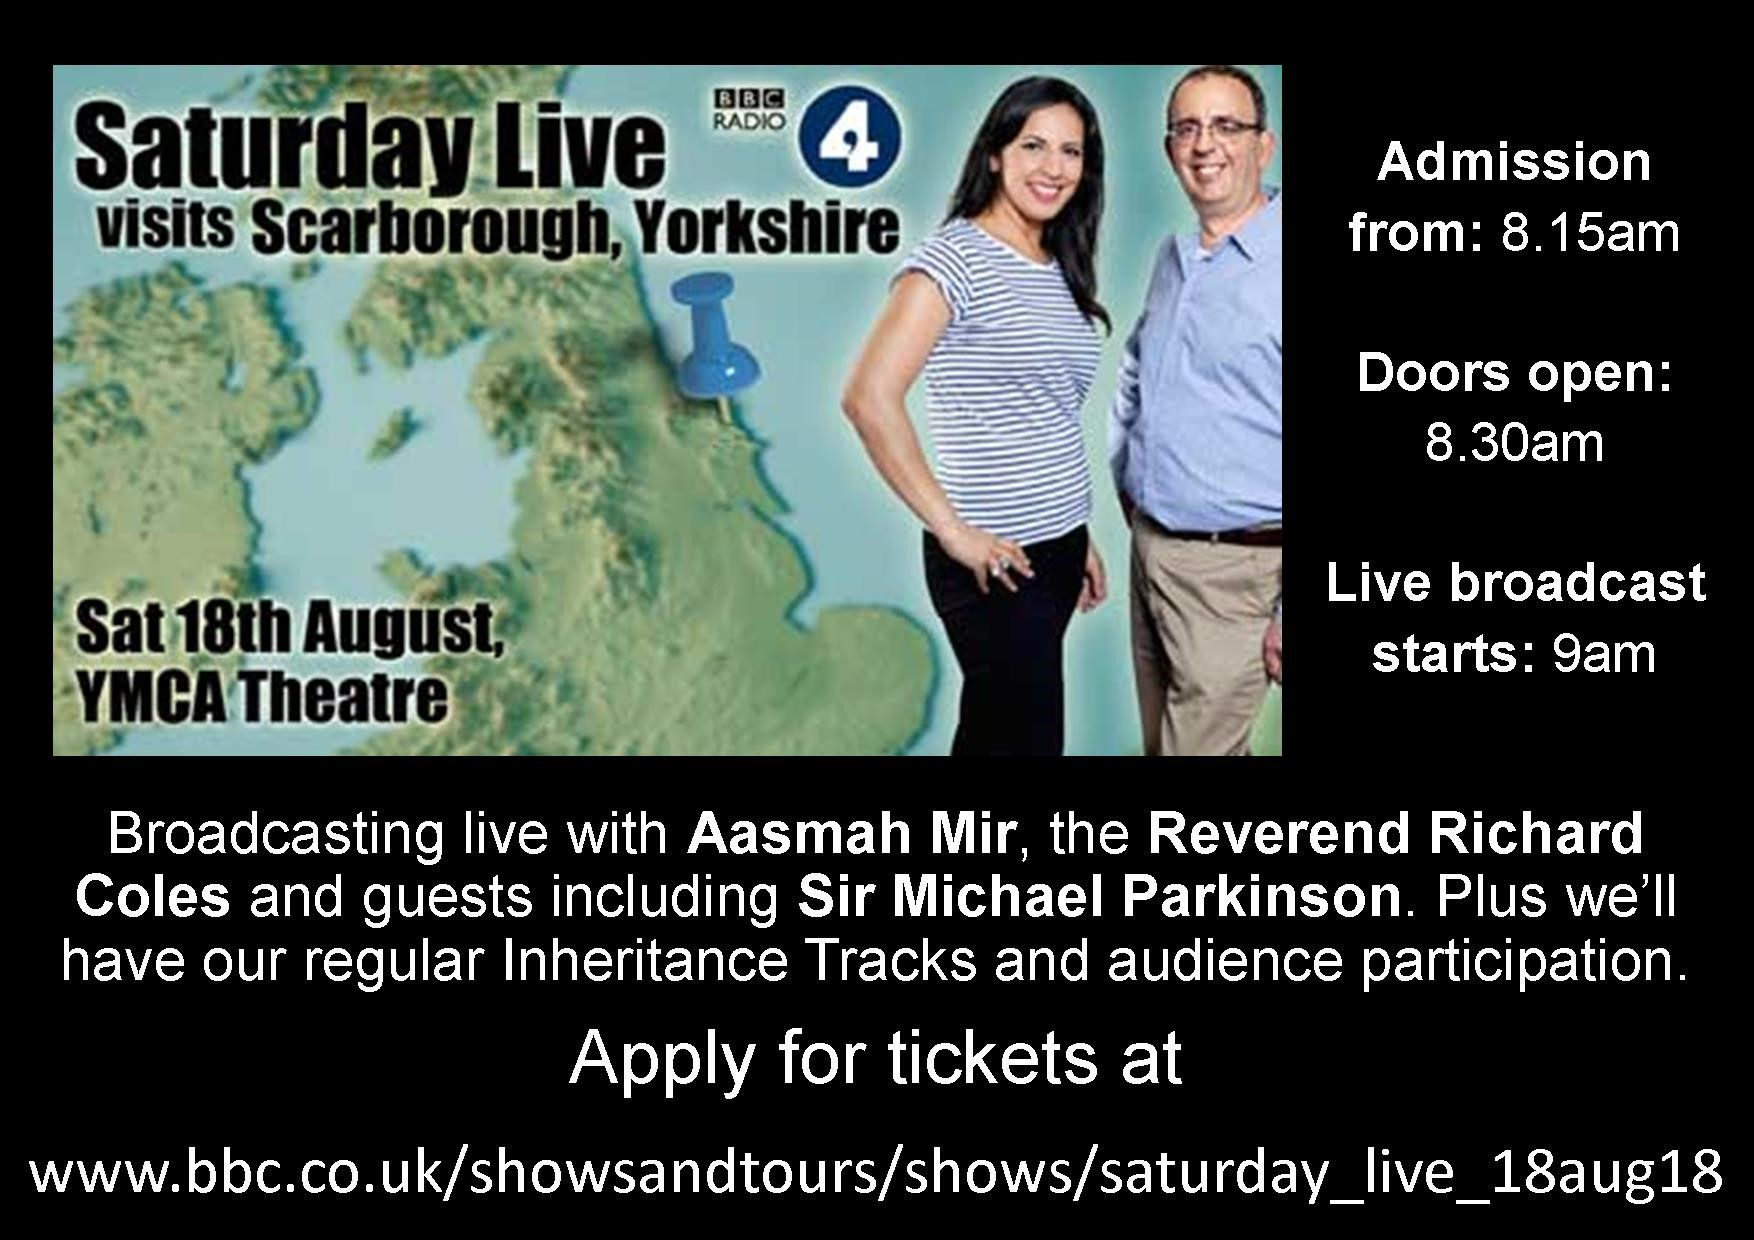 BBC Radio 4 - Saturday Morning Live